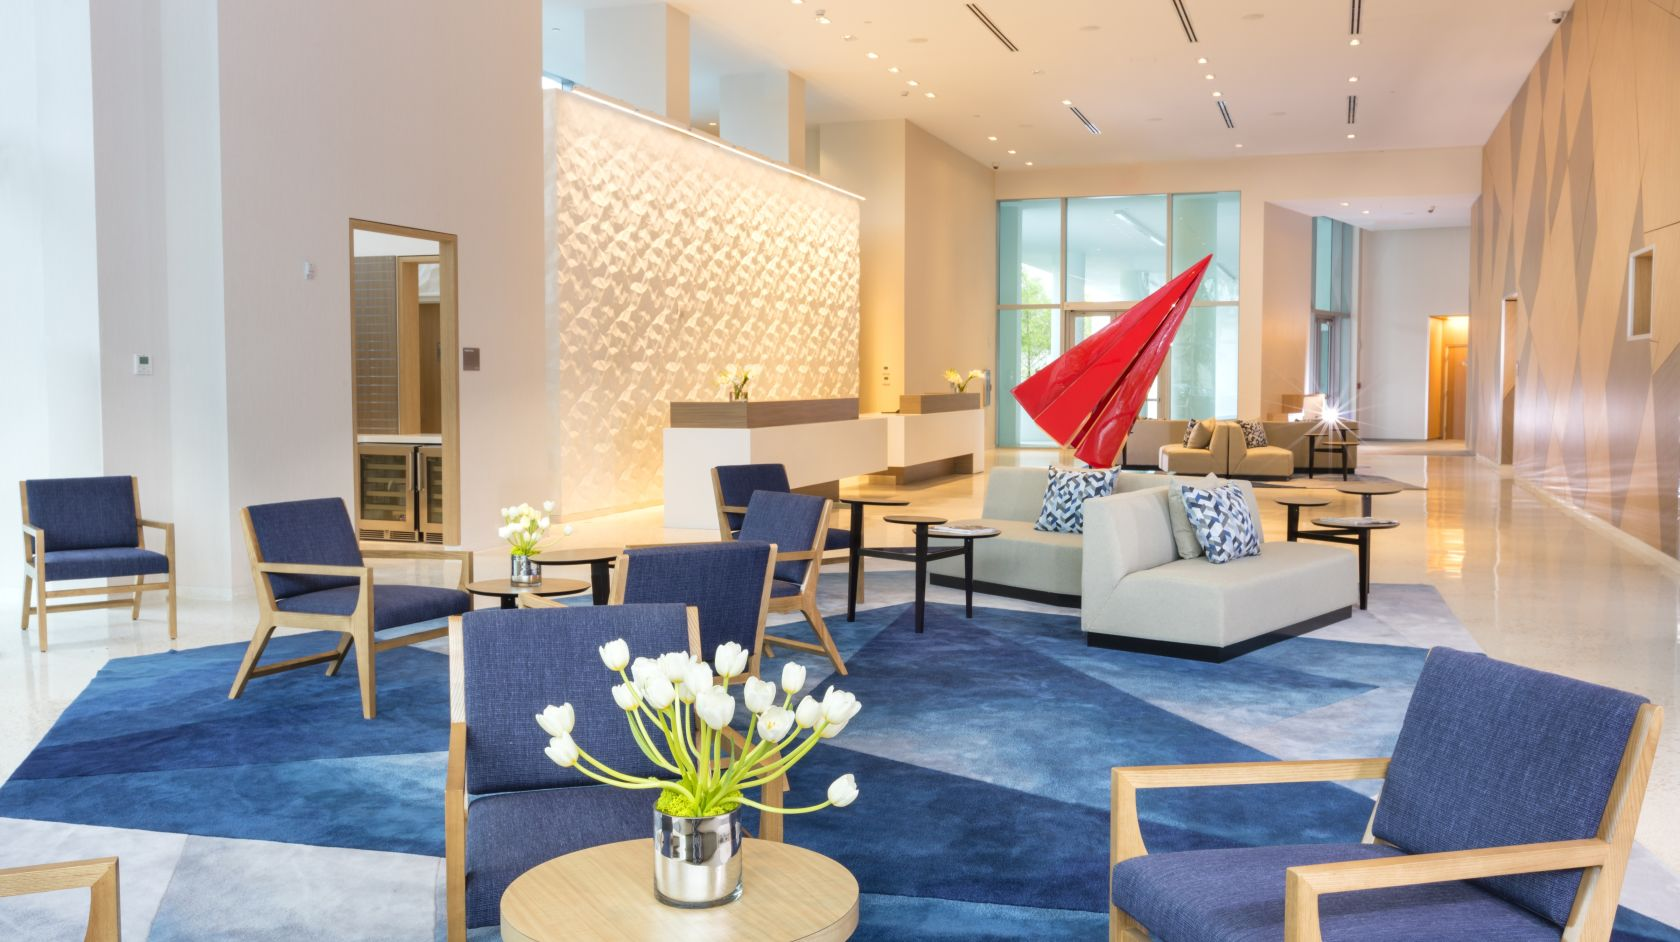 lobby area at Novotel Miami Brickell hotel